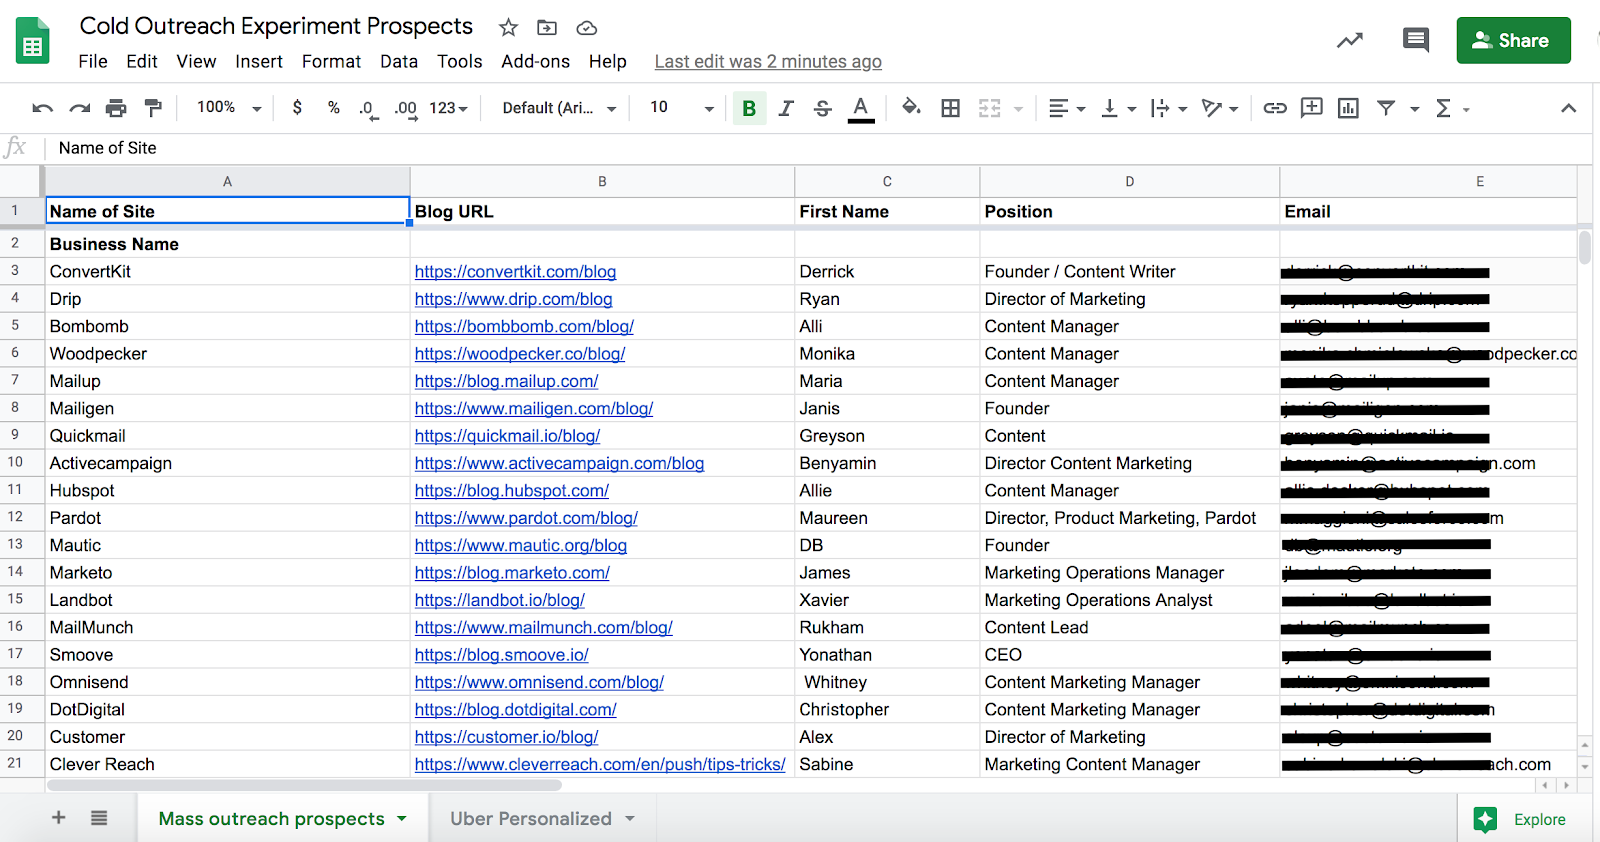 Manual campaign - Cold outreach experiment 100 list of prospects